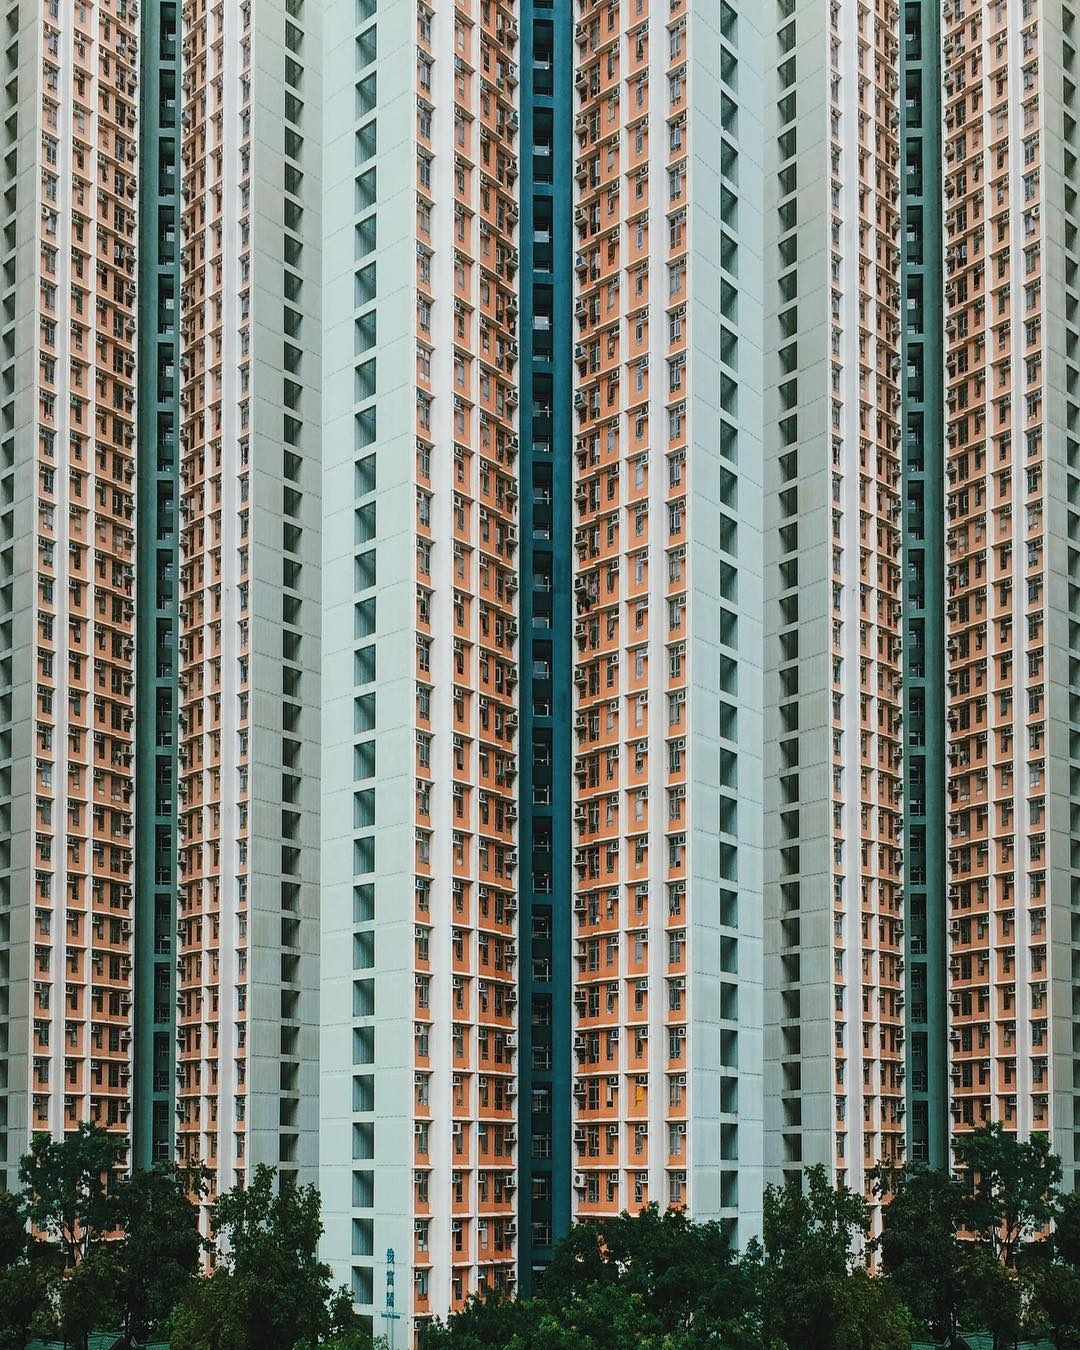 Kyle Yu Captures Mesmerizing Ph - photogrist | ello